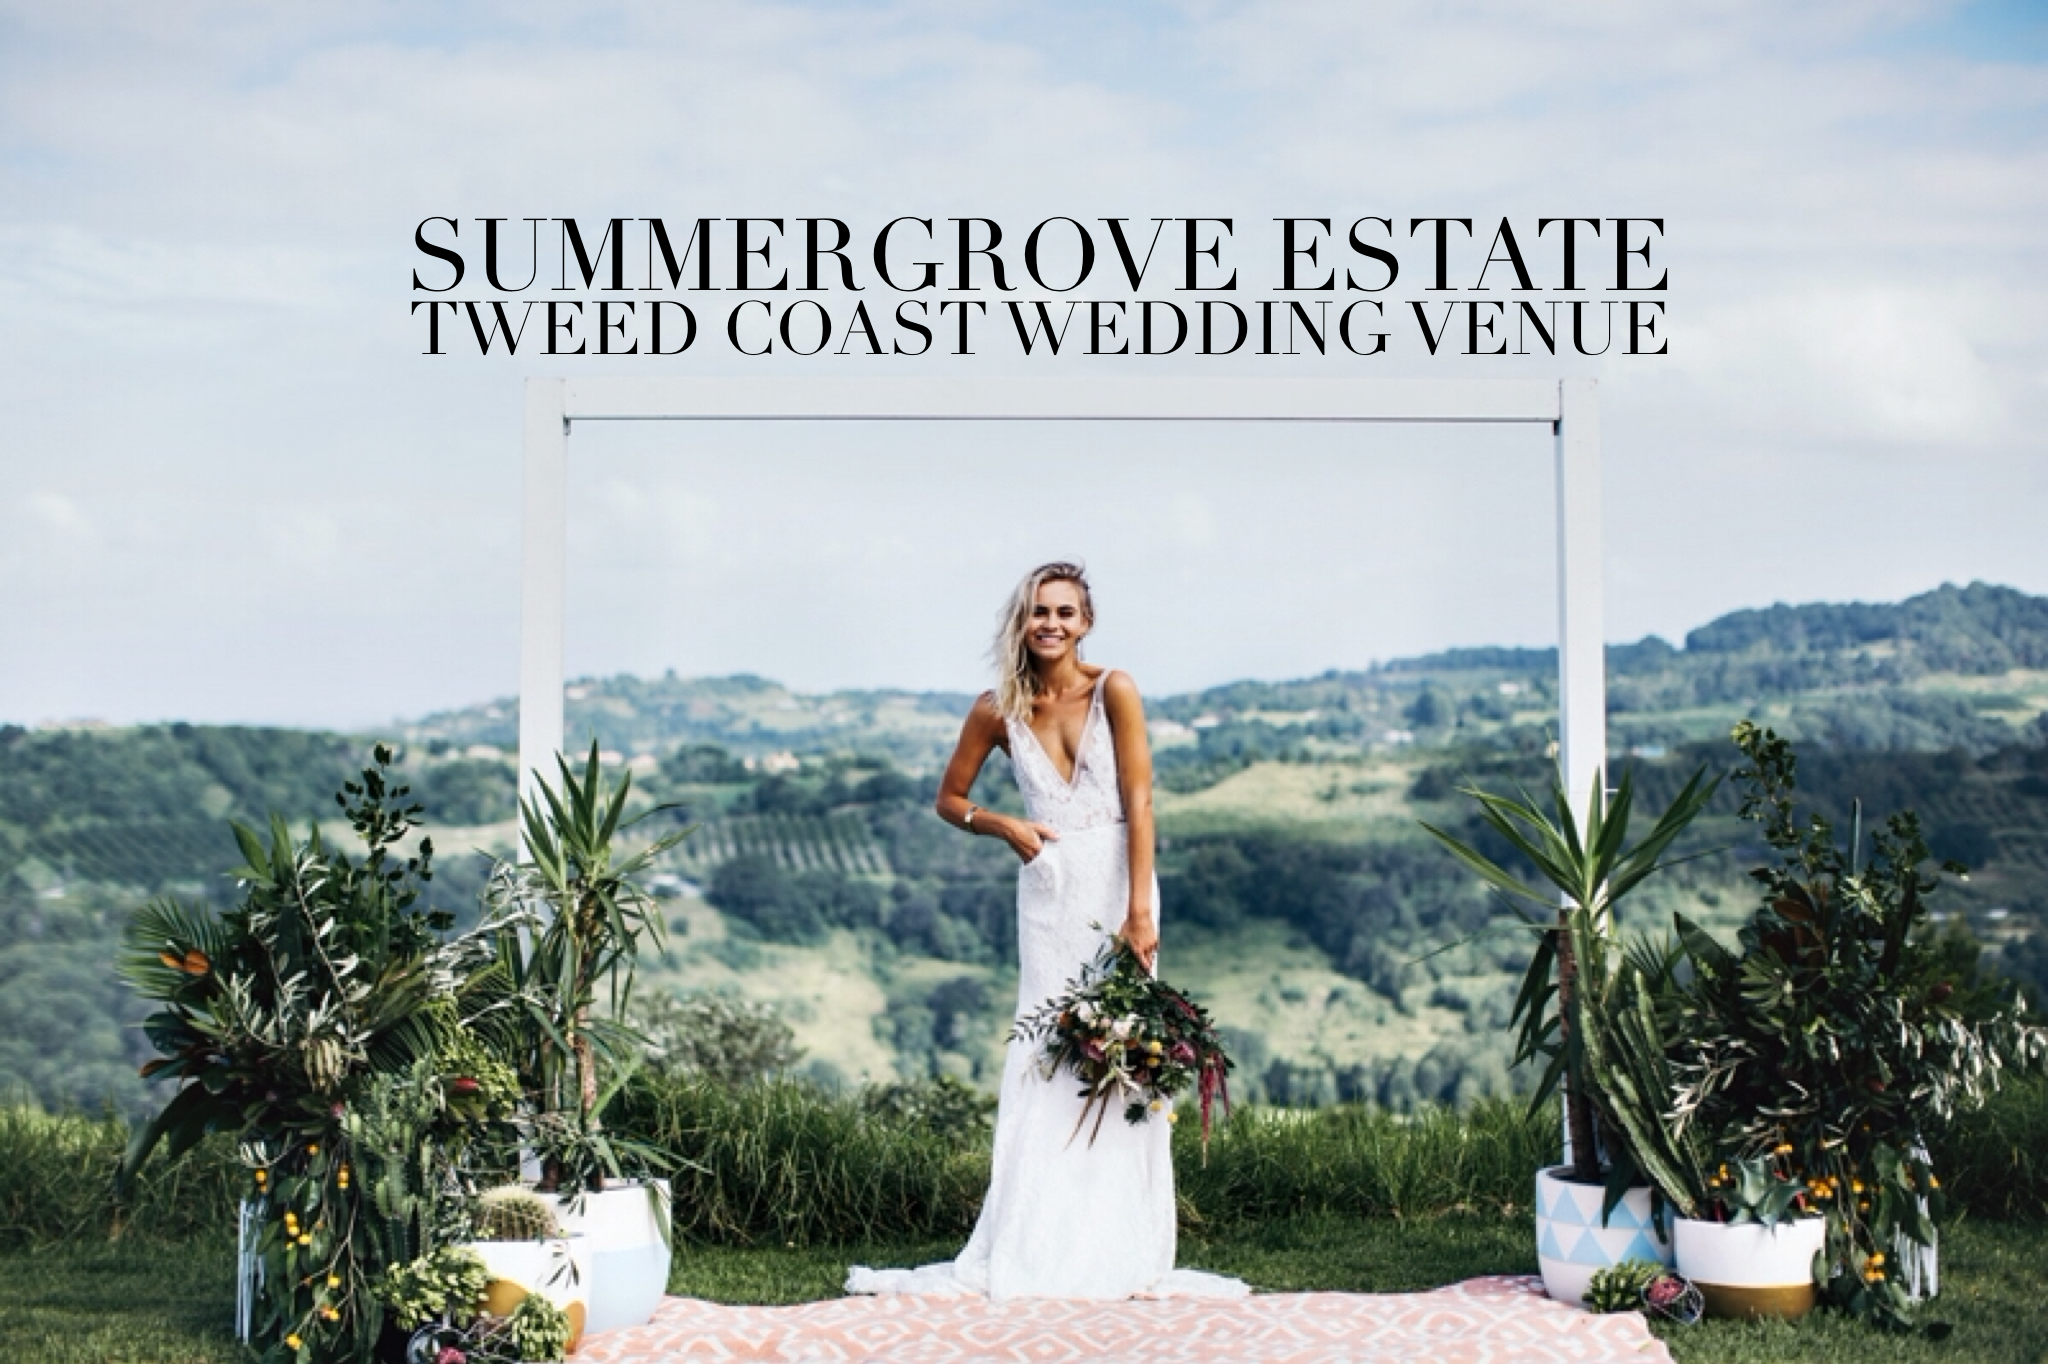 summergrove-estate-wedding-venue-carool-tweed-coast